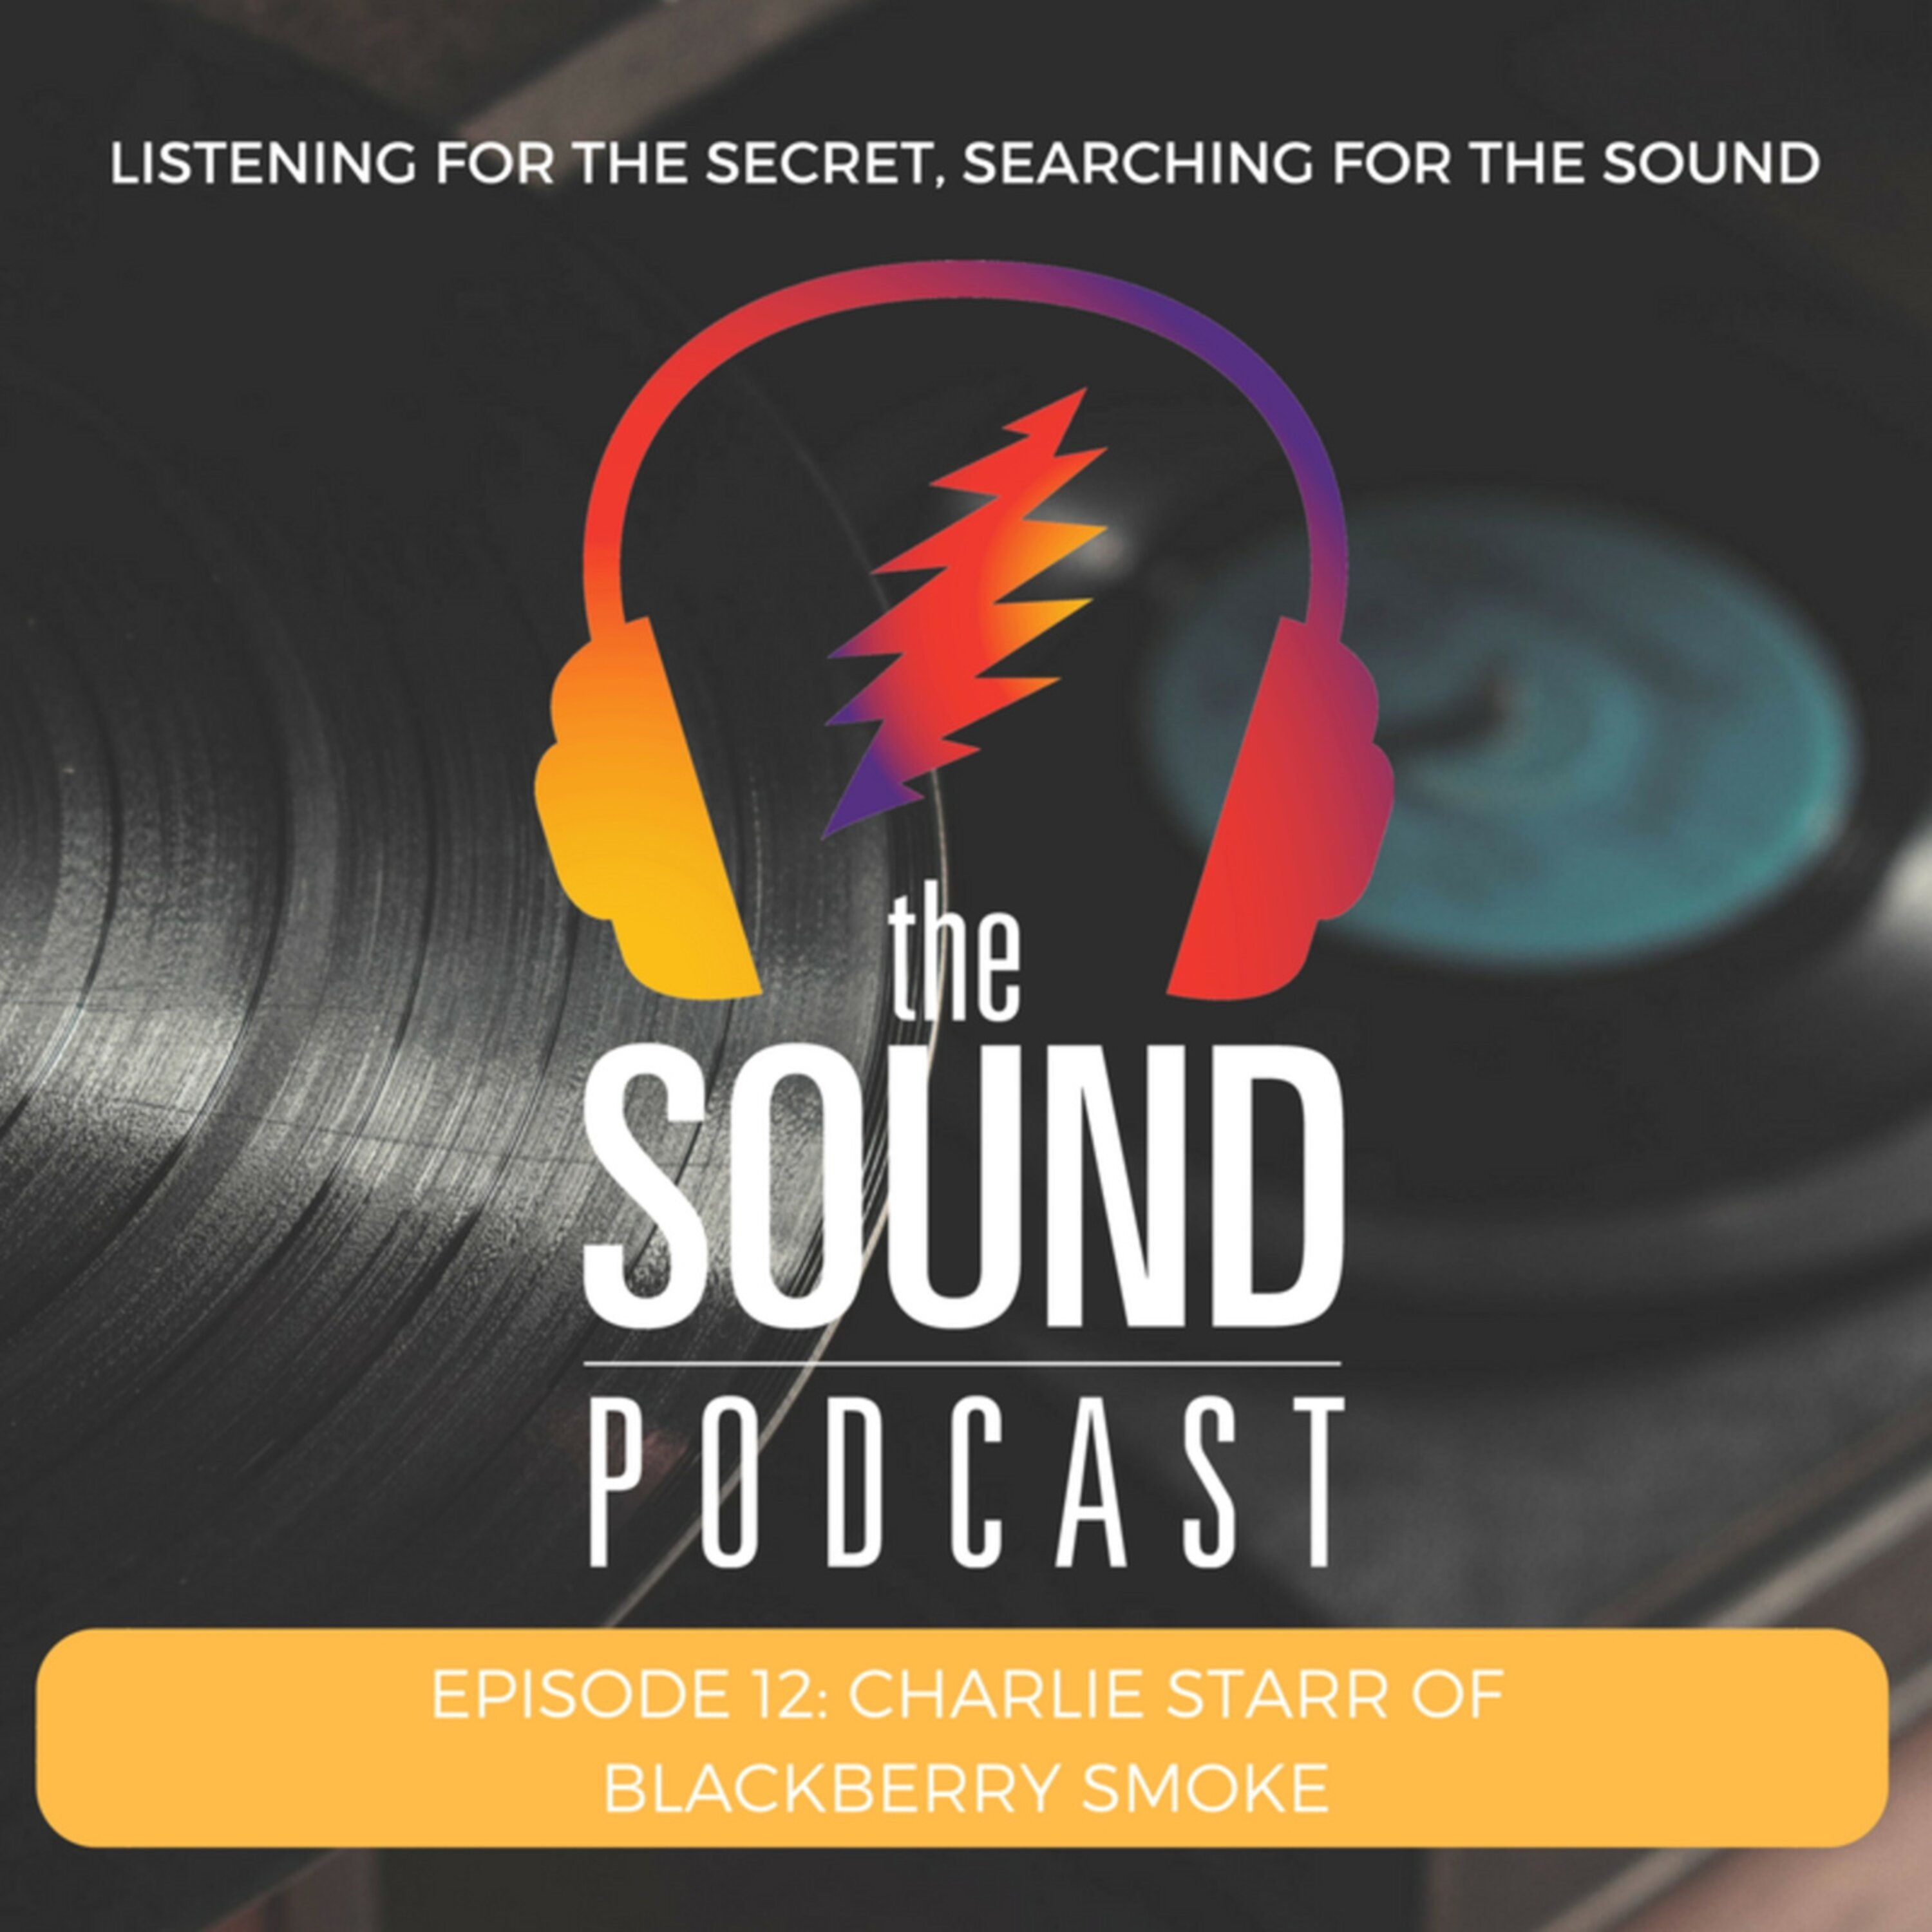 Episode 12: Charlie Starr of Blackberry Smoke